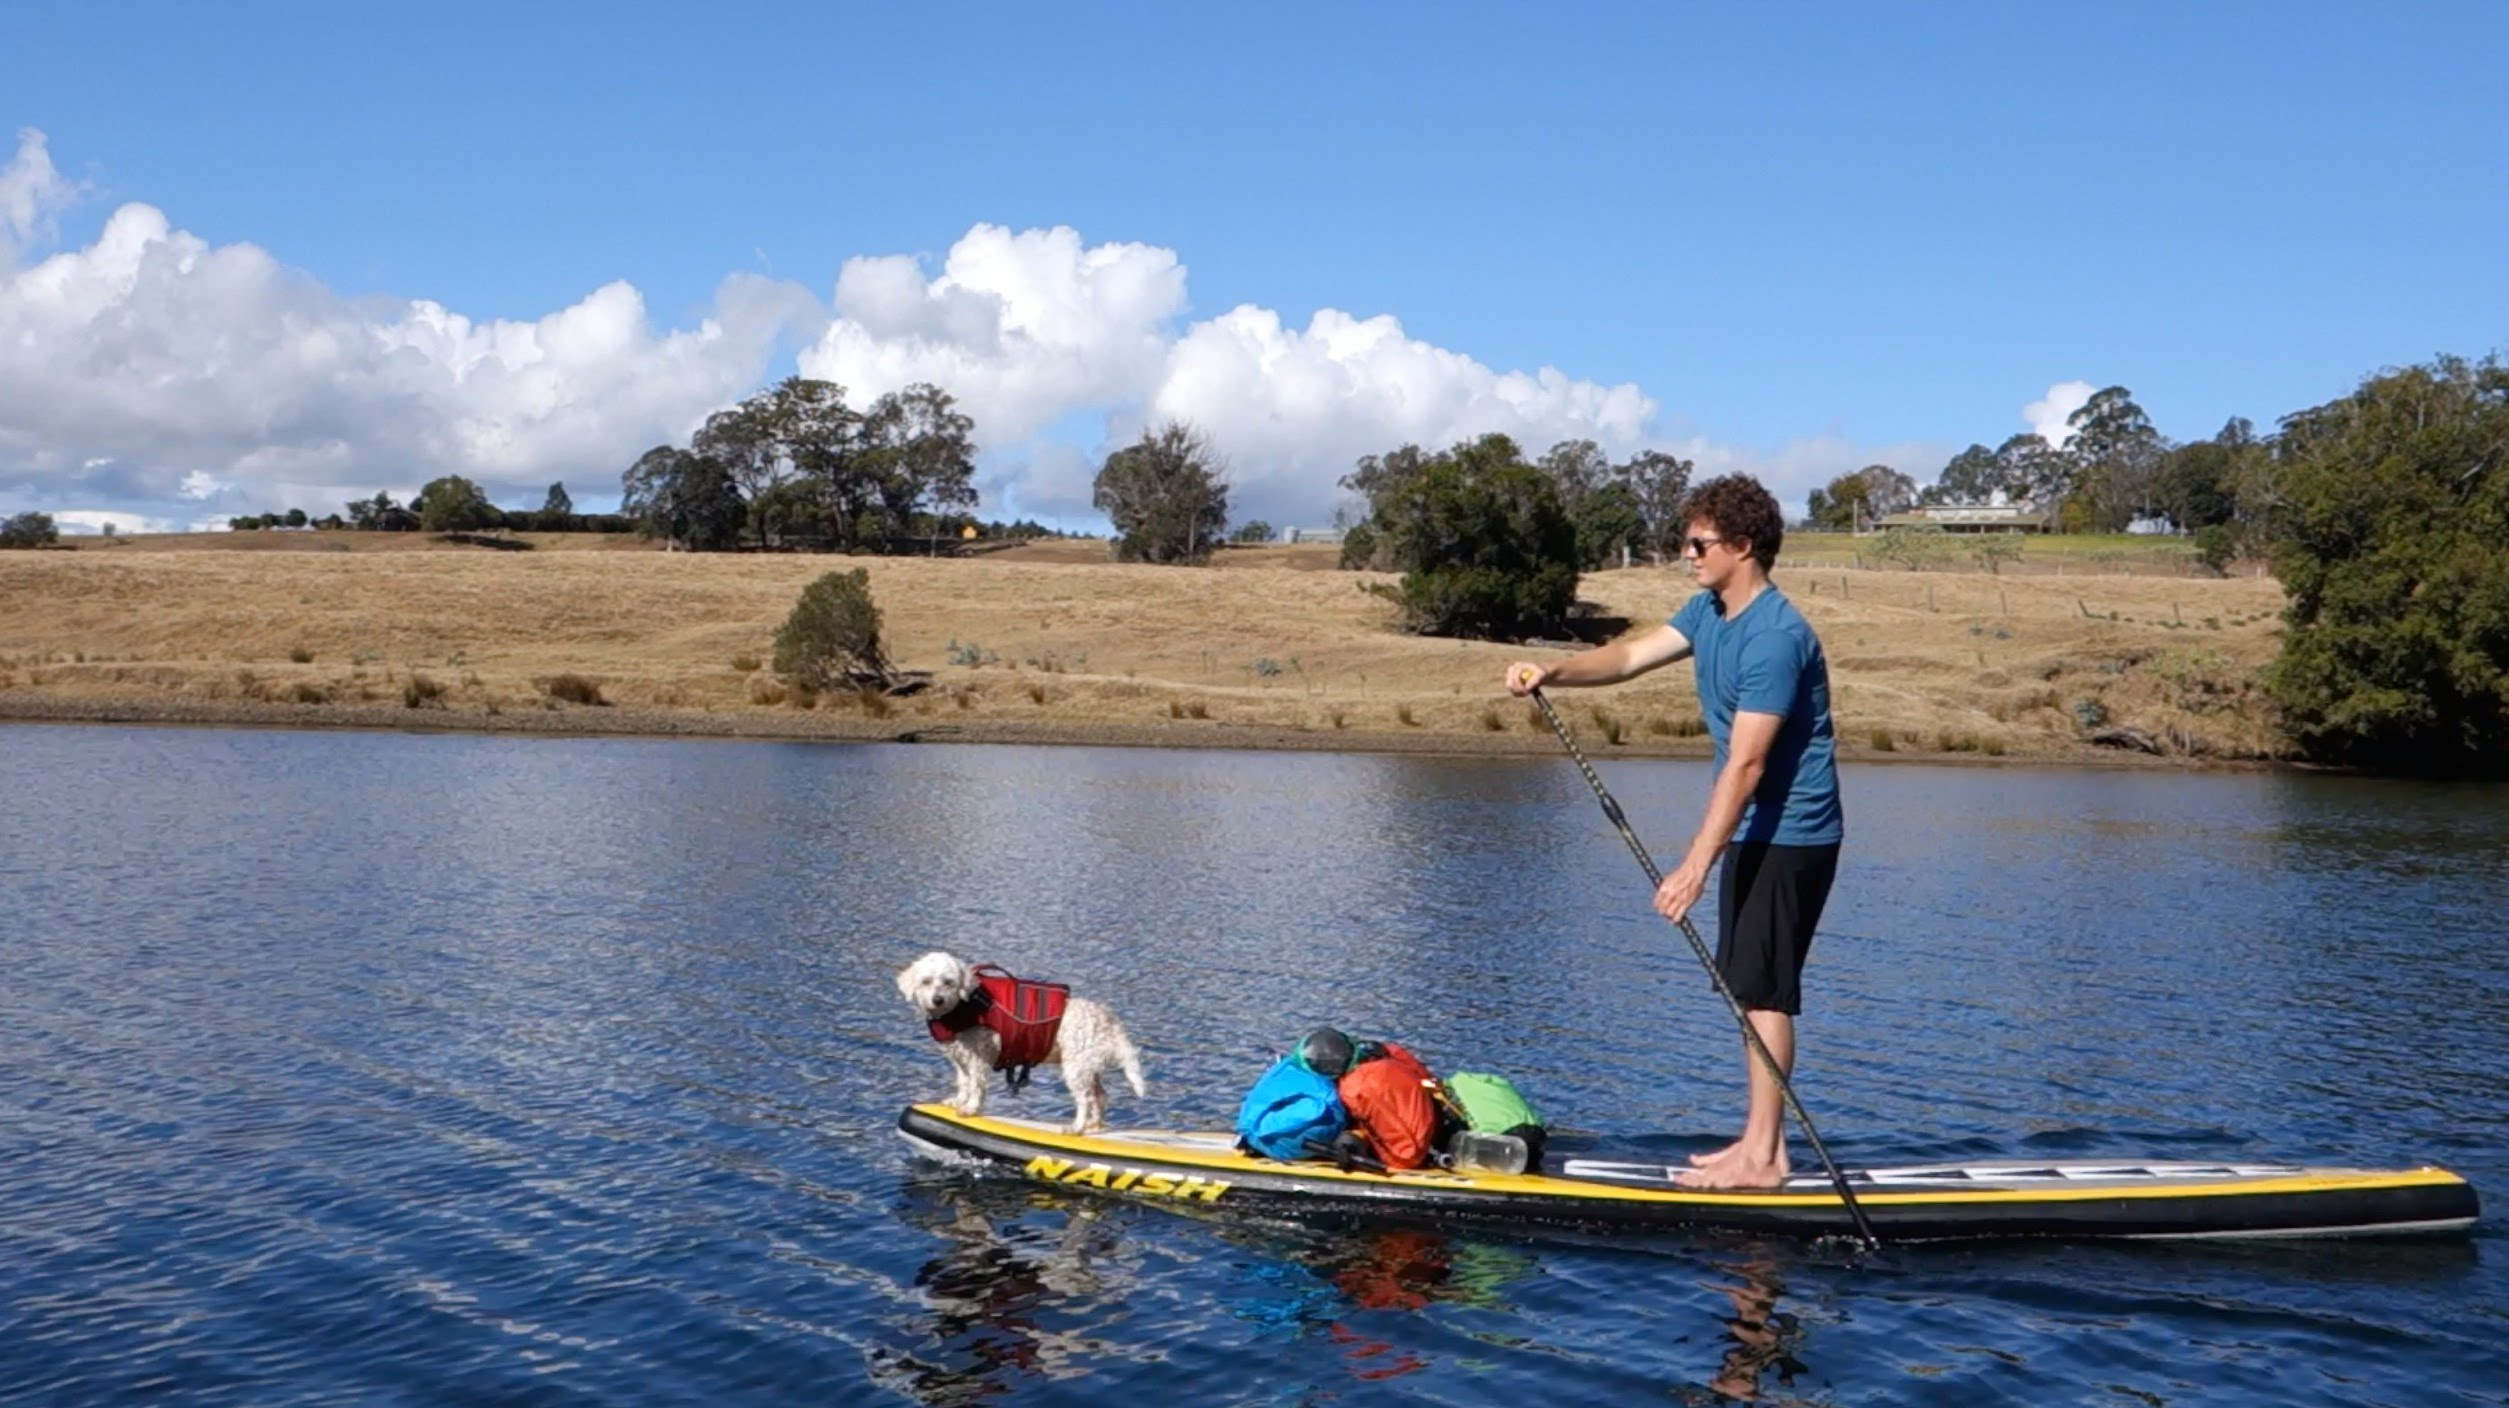 46K on SUP on the Manning River, Australia